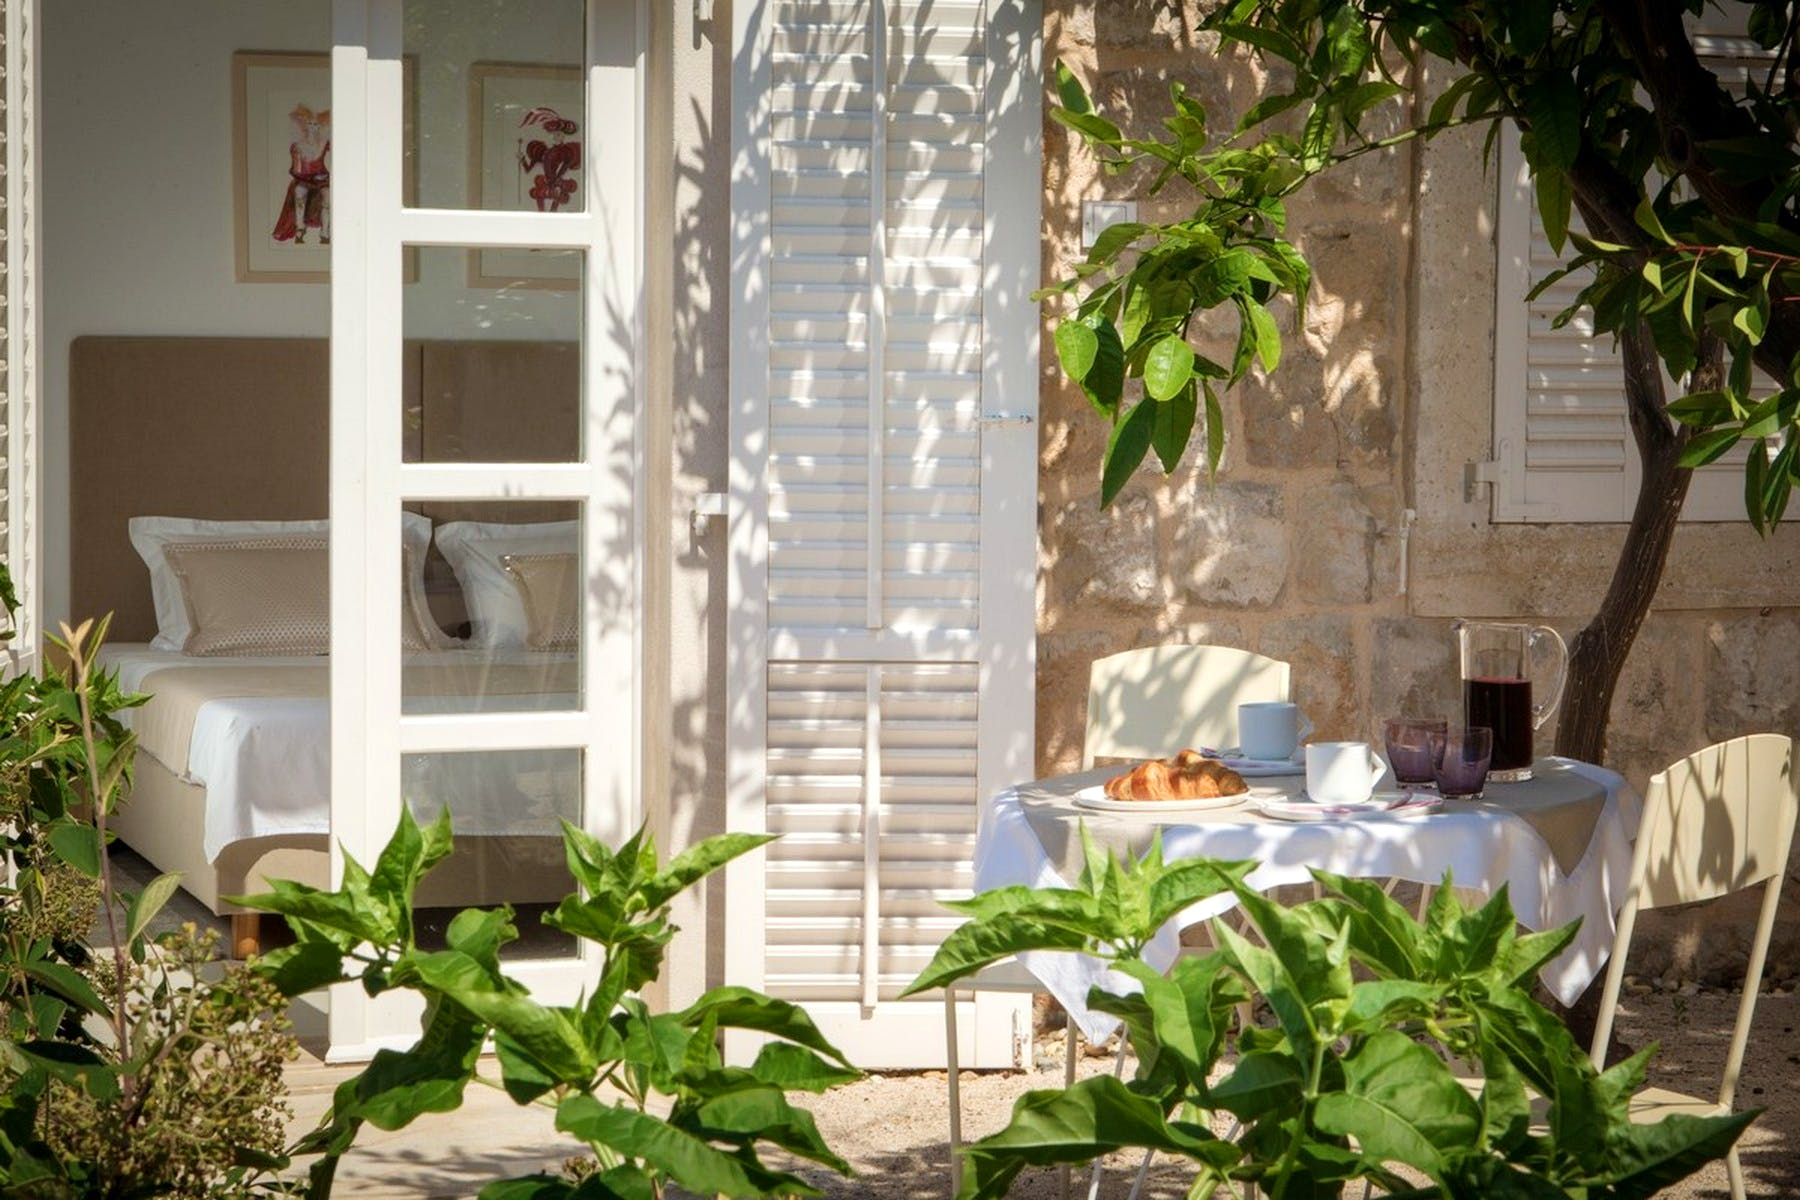 Mediterranean greenary completing the charm of the property